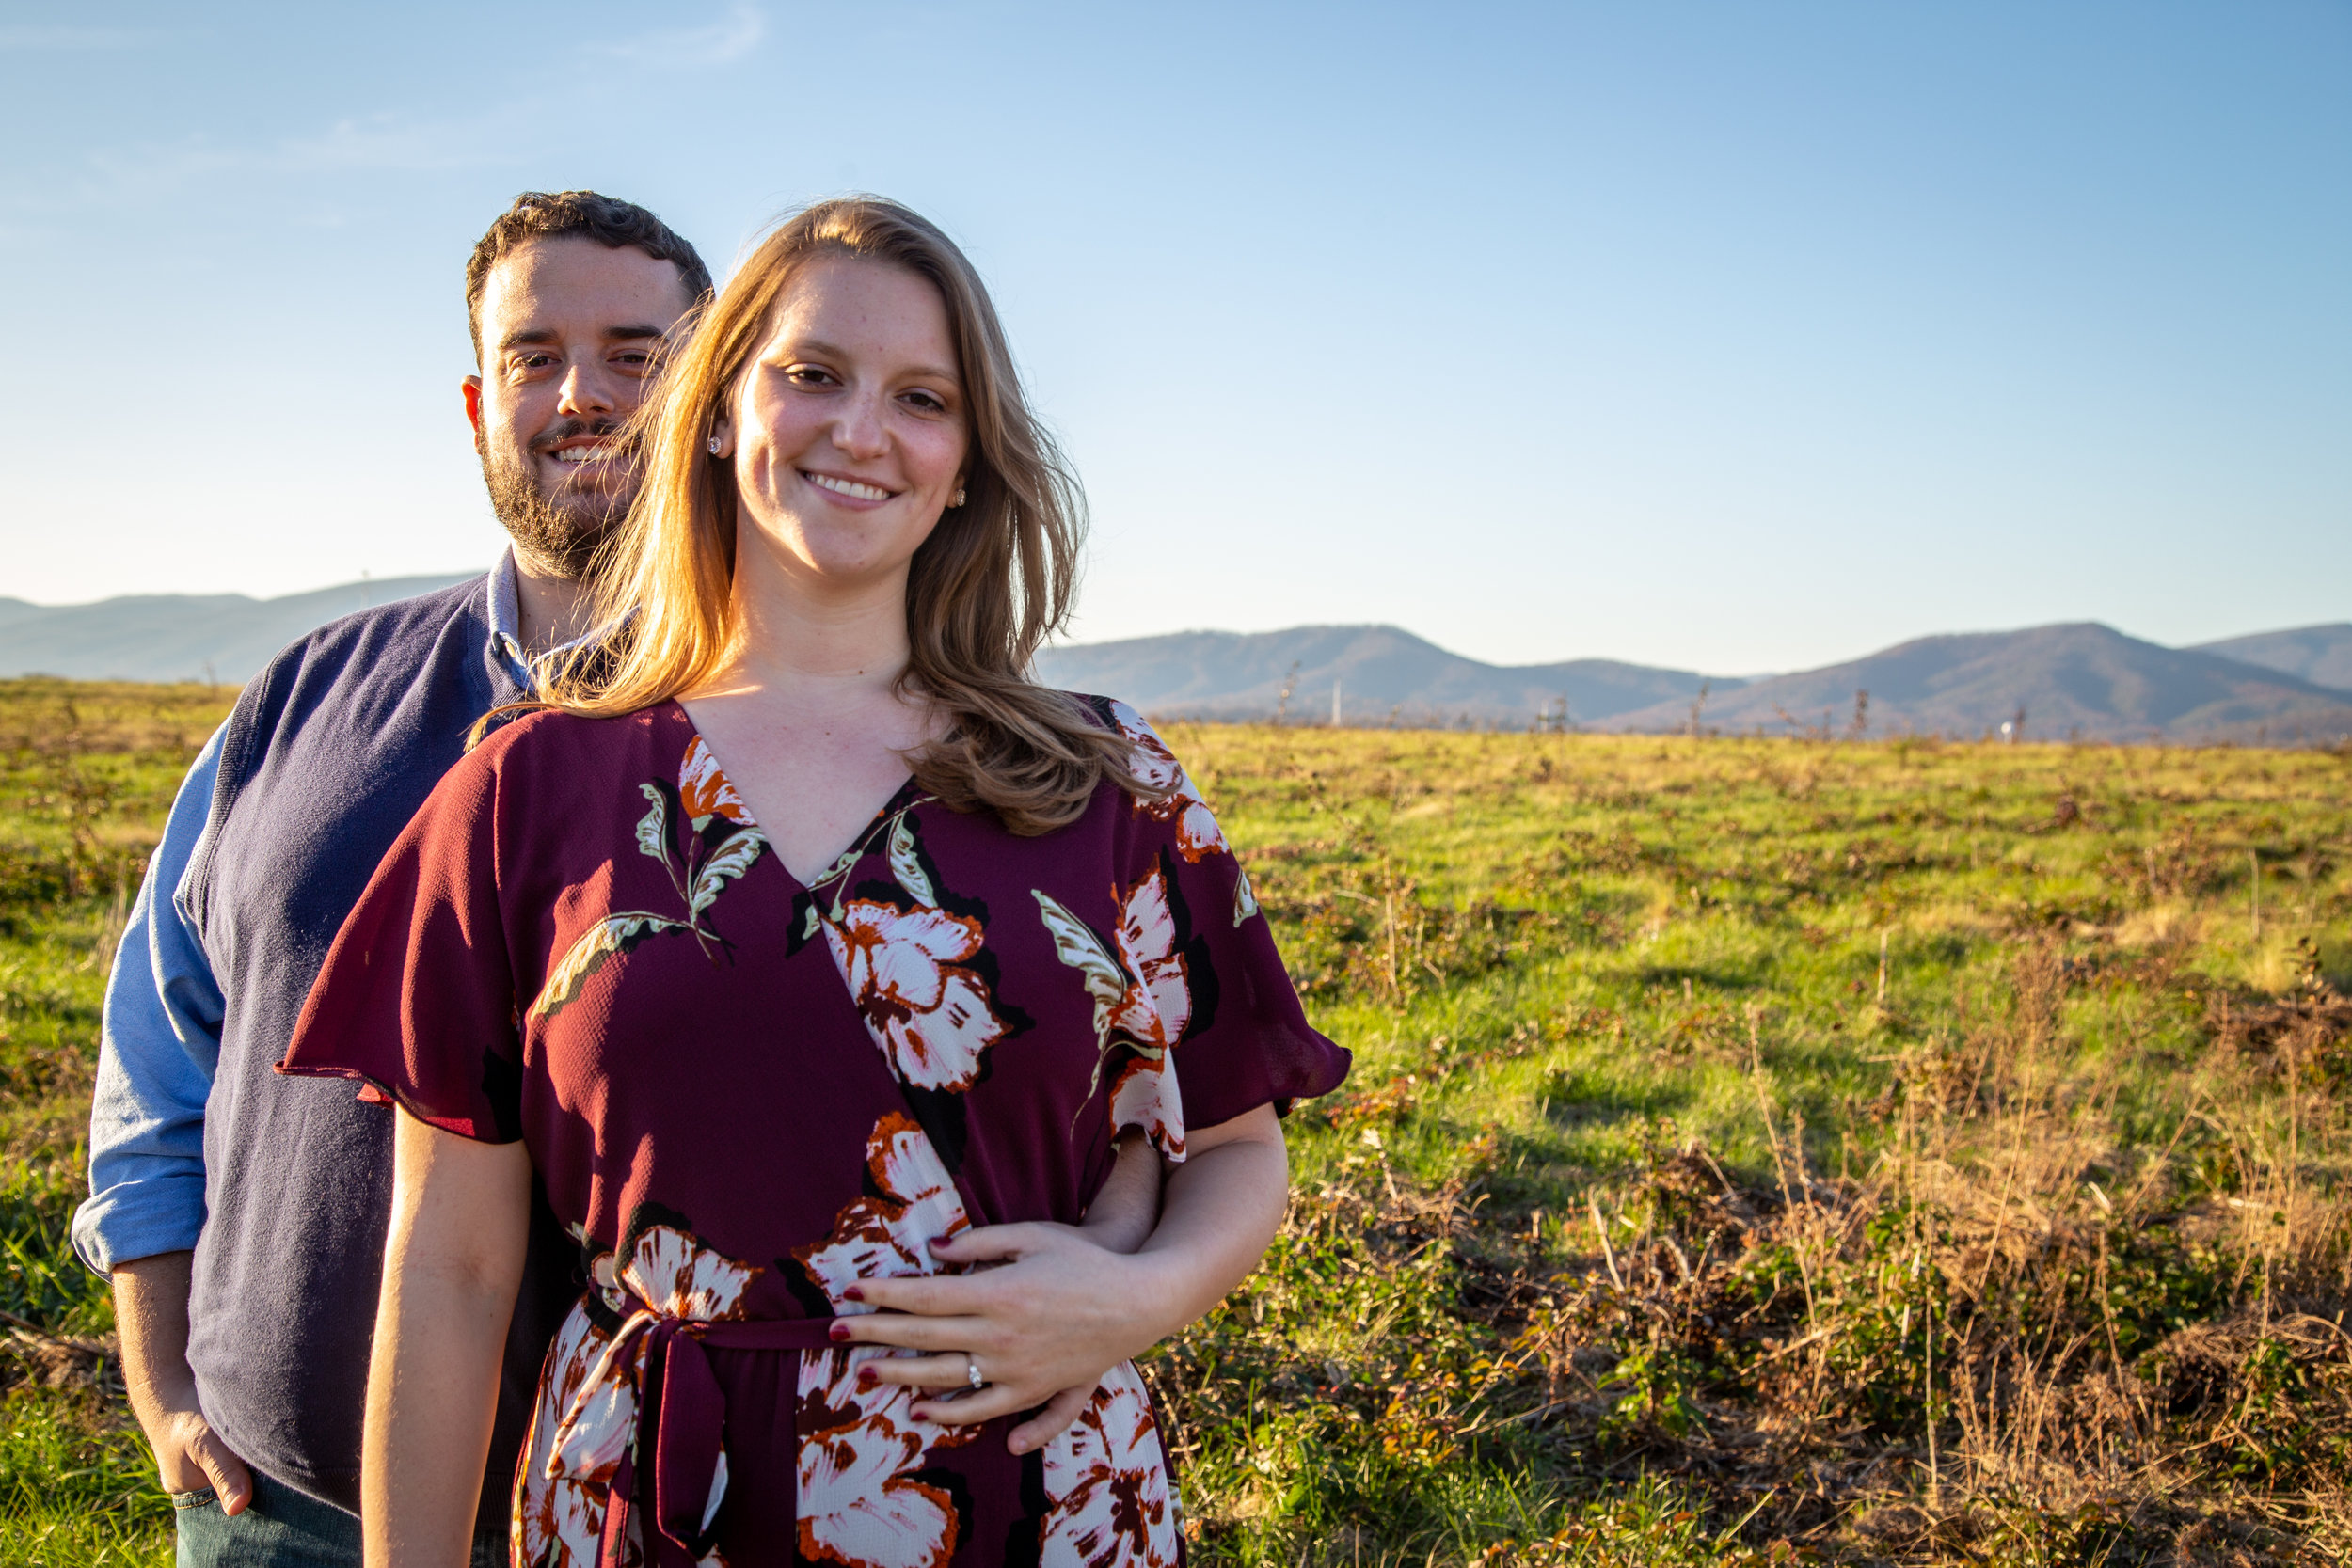 Sunset-Roanoke-shakers-field-flare-airport-love-together-virginia-photography-shoot-together